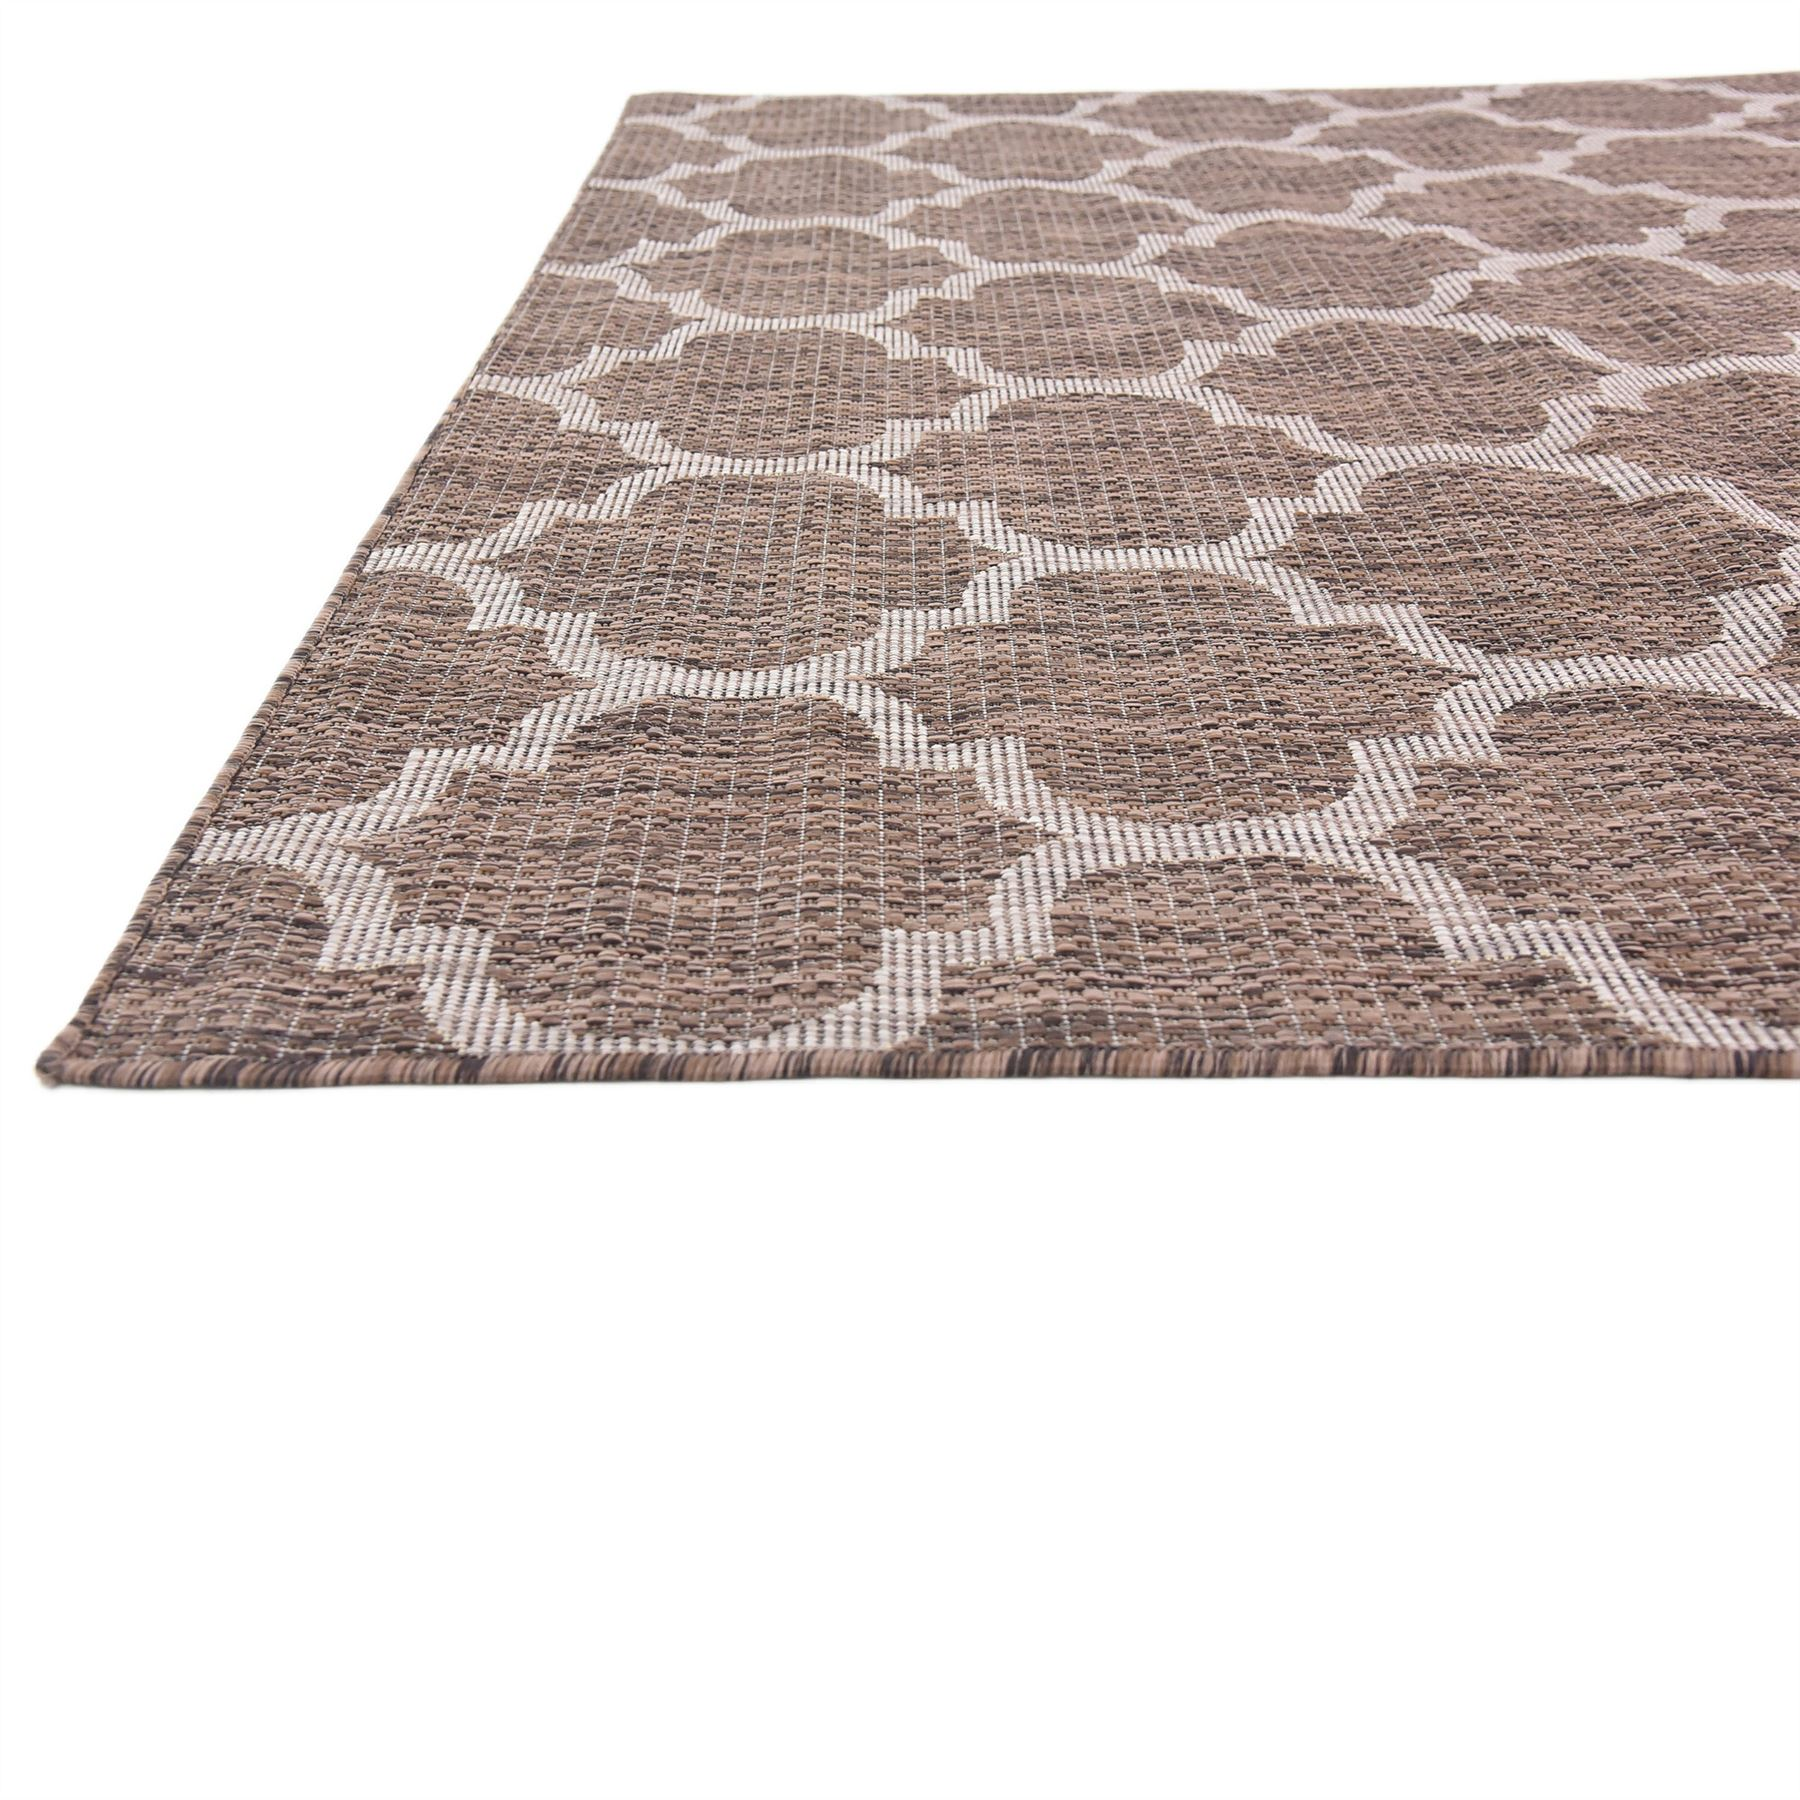 Modern Looking Rug: Modern Geometric Contemporary Moroccan Style Carpet Large